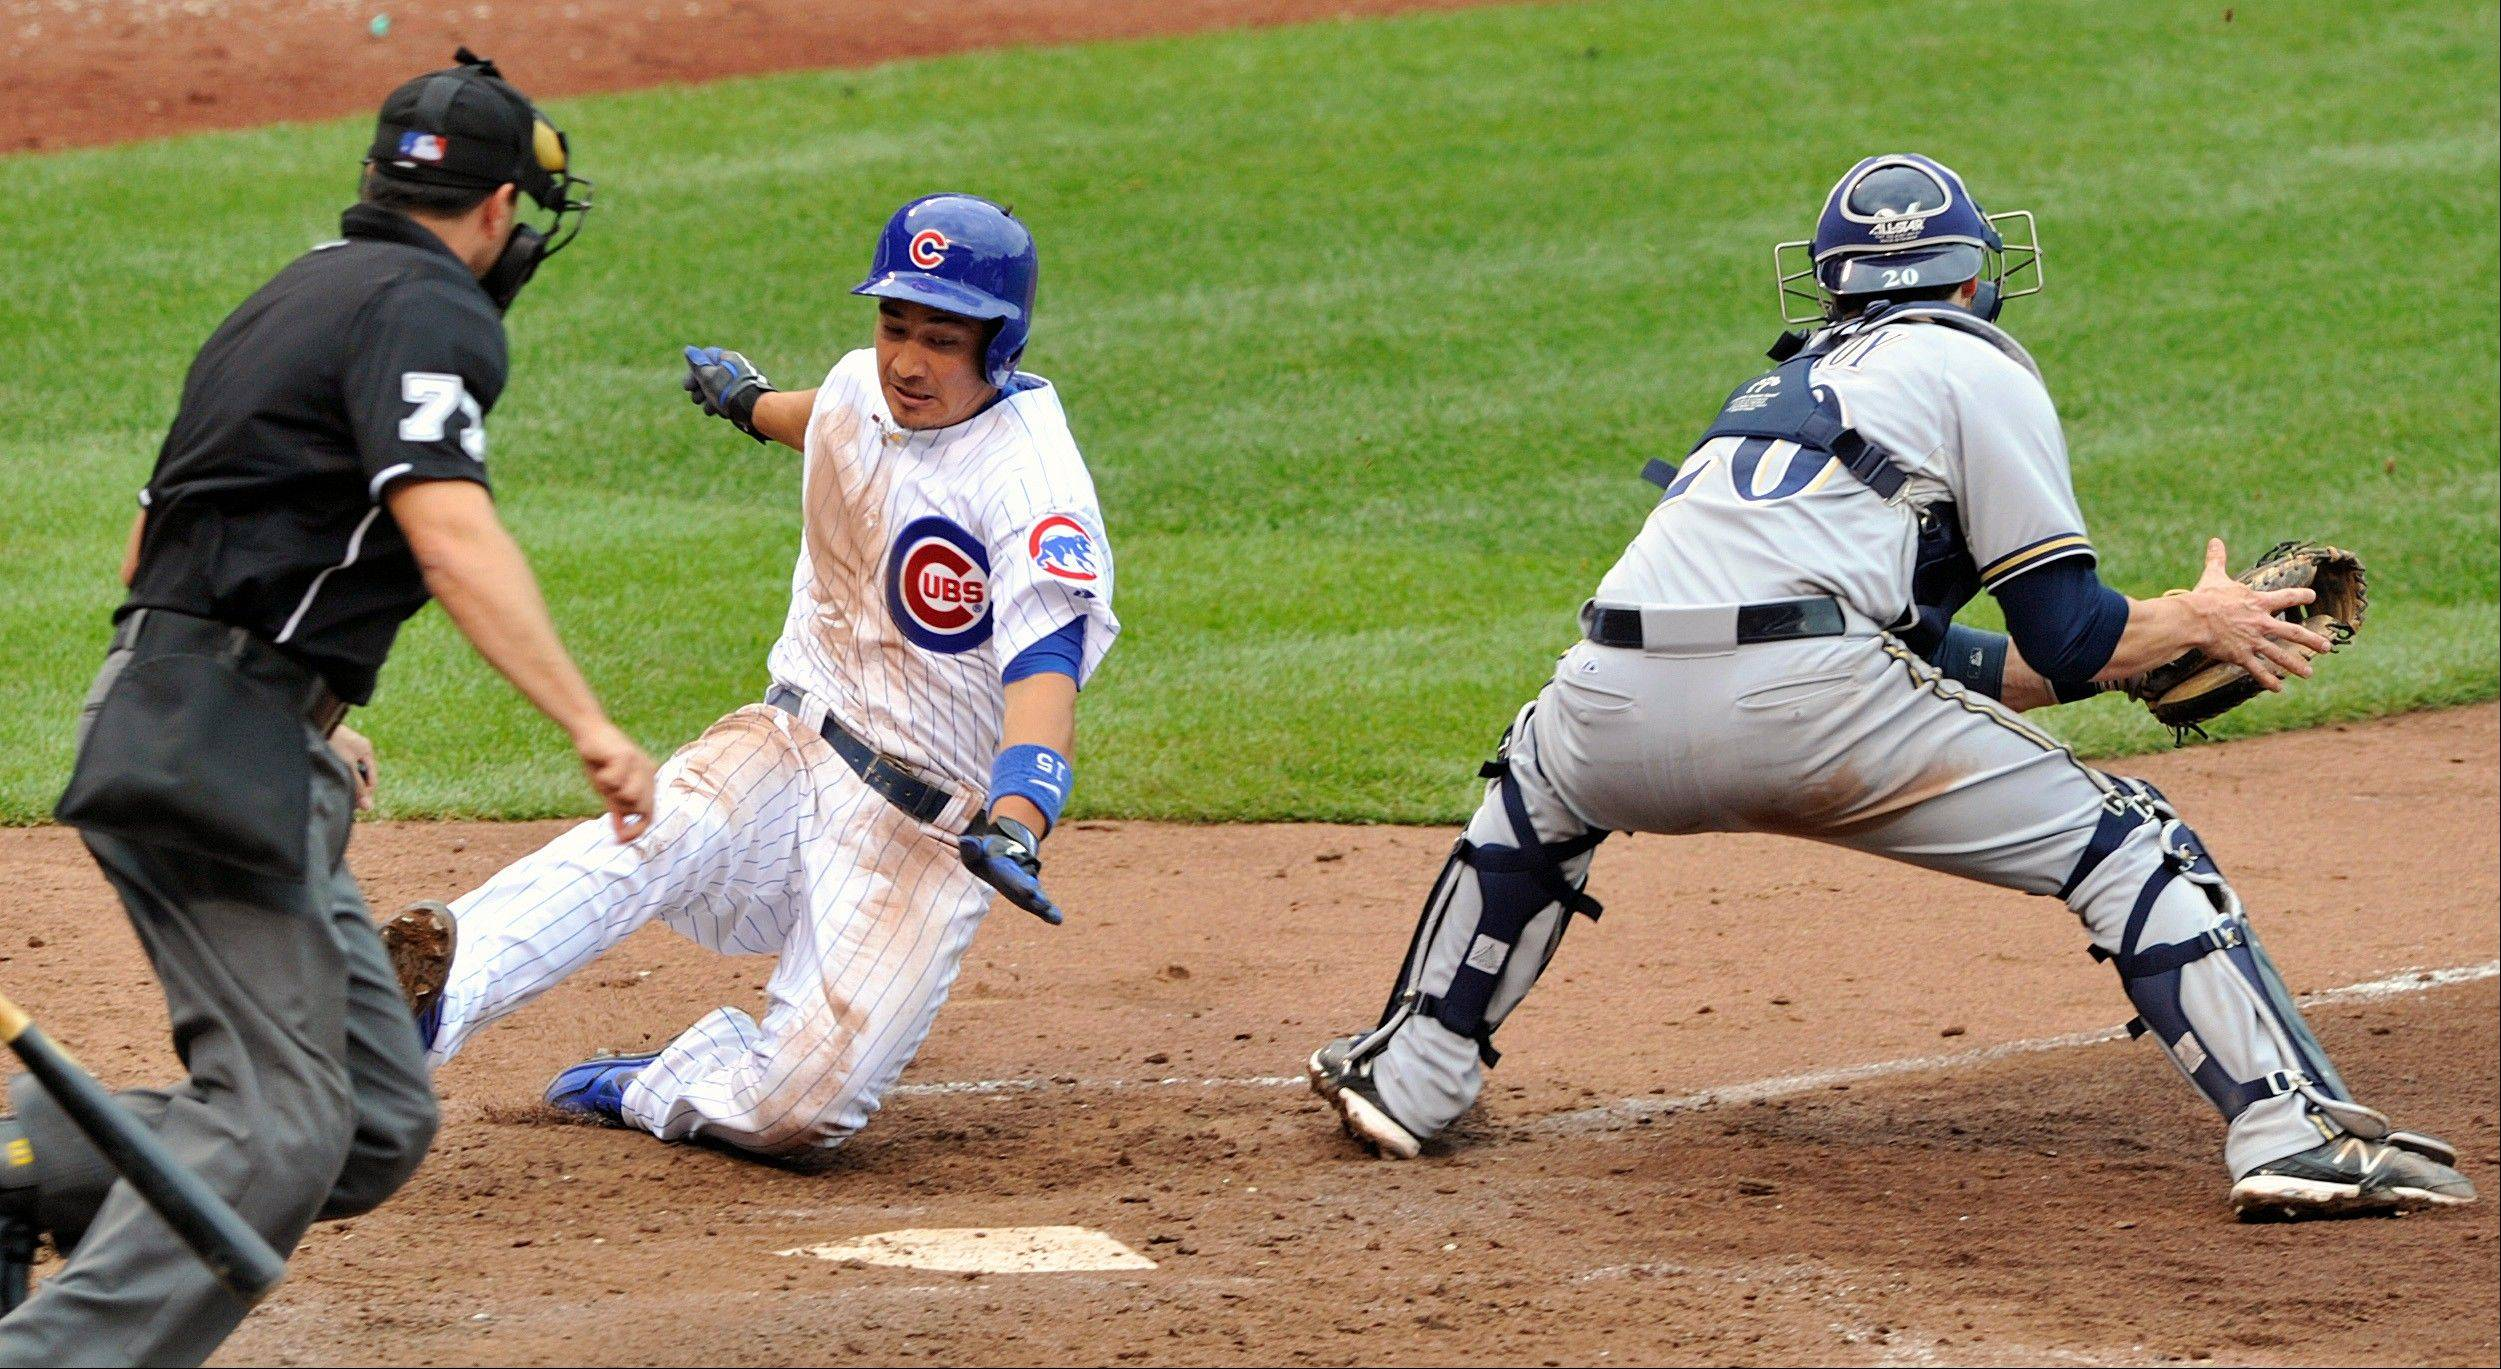 Chicago Cubs' Darwin Barney left, avoids the tag of Milwaukee Brewers catcher Jonathan Lucroy to score on an RBI single by Carlos Villanueva during the fifth inning of a baseball game Tuesday in Chicago.